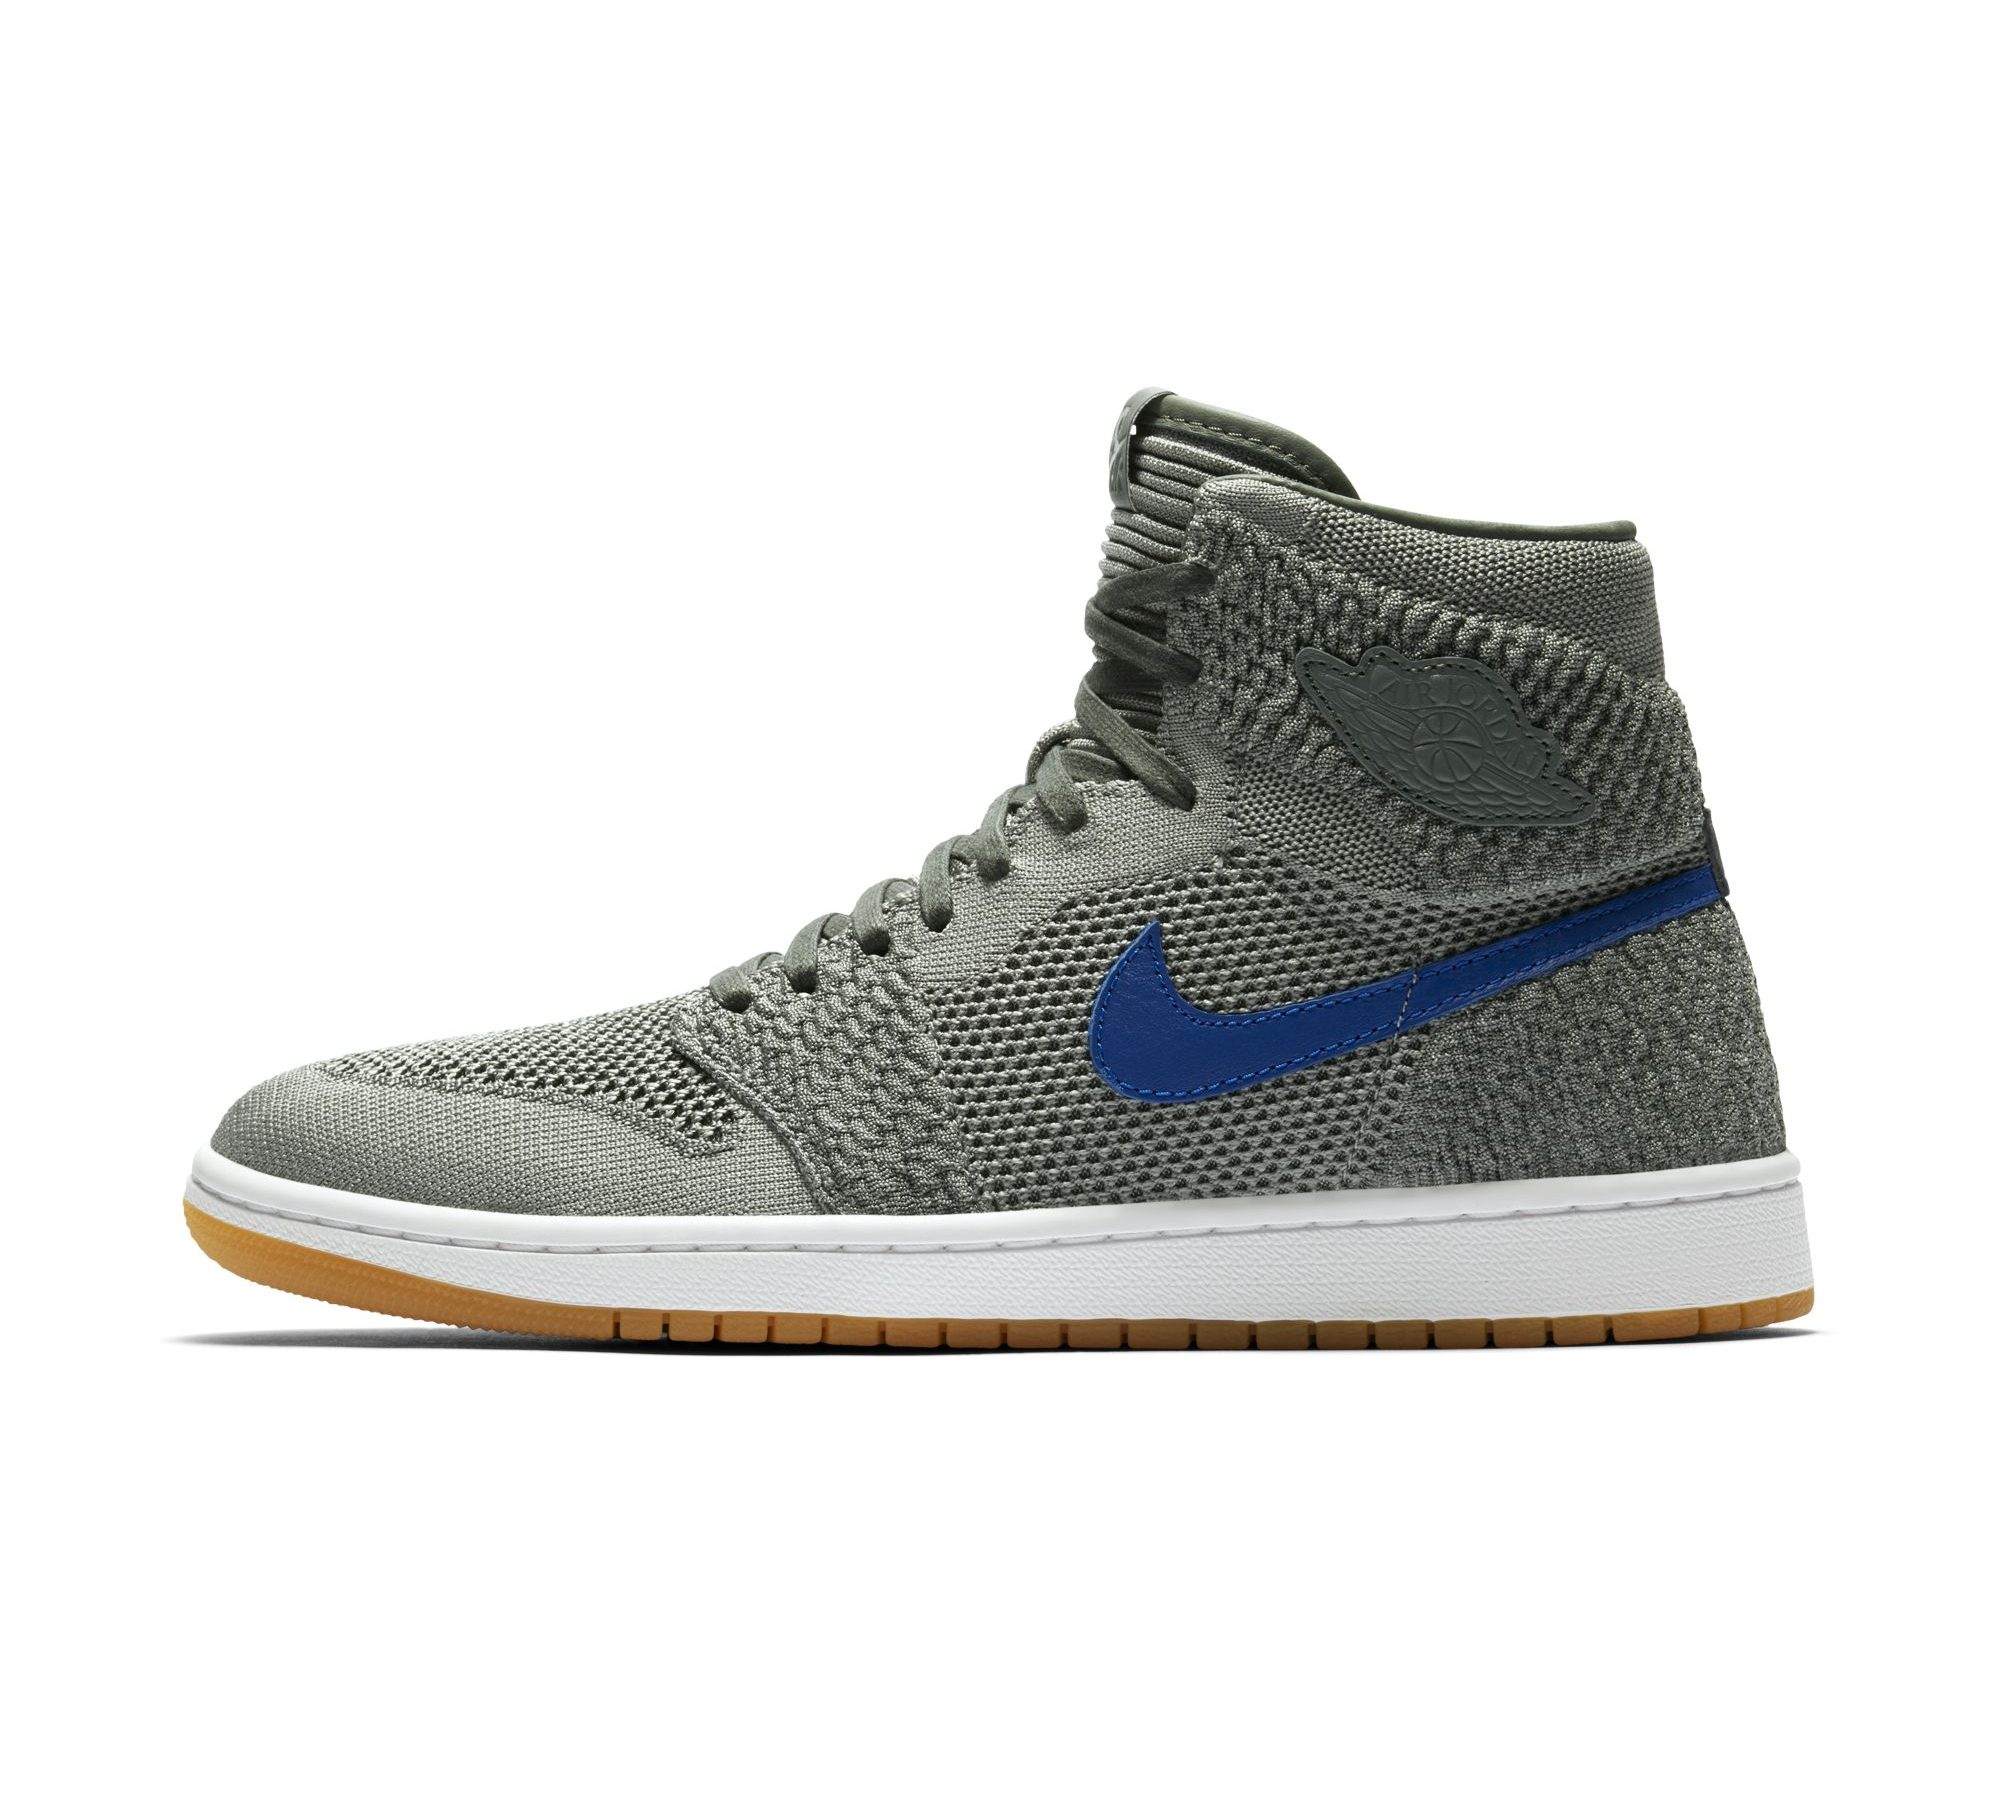 competitive price 613d9 1f48d An Official Look at the Multicolor Air Jordan 1 Flyknit ...